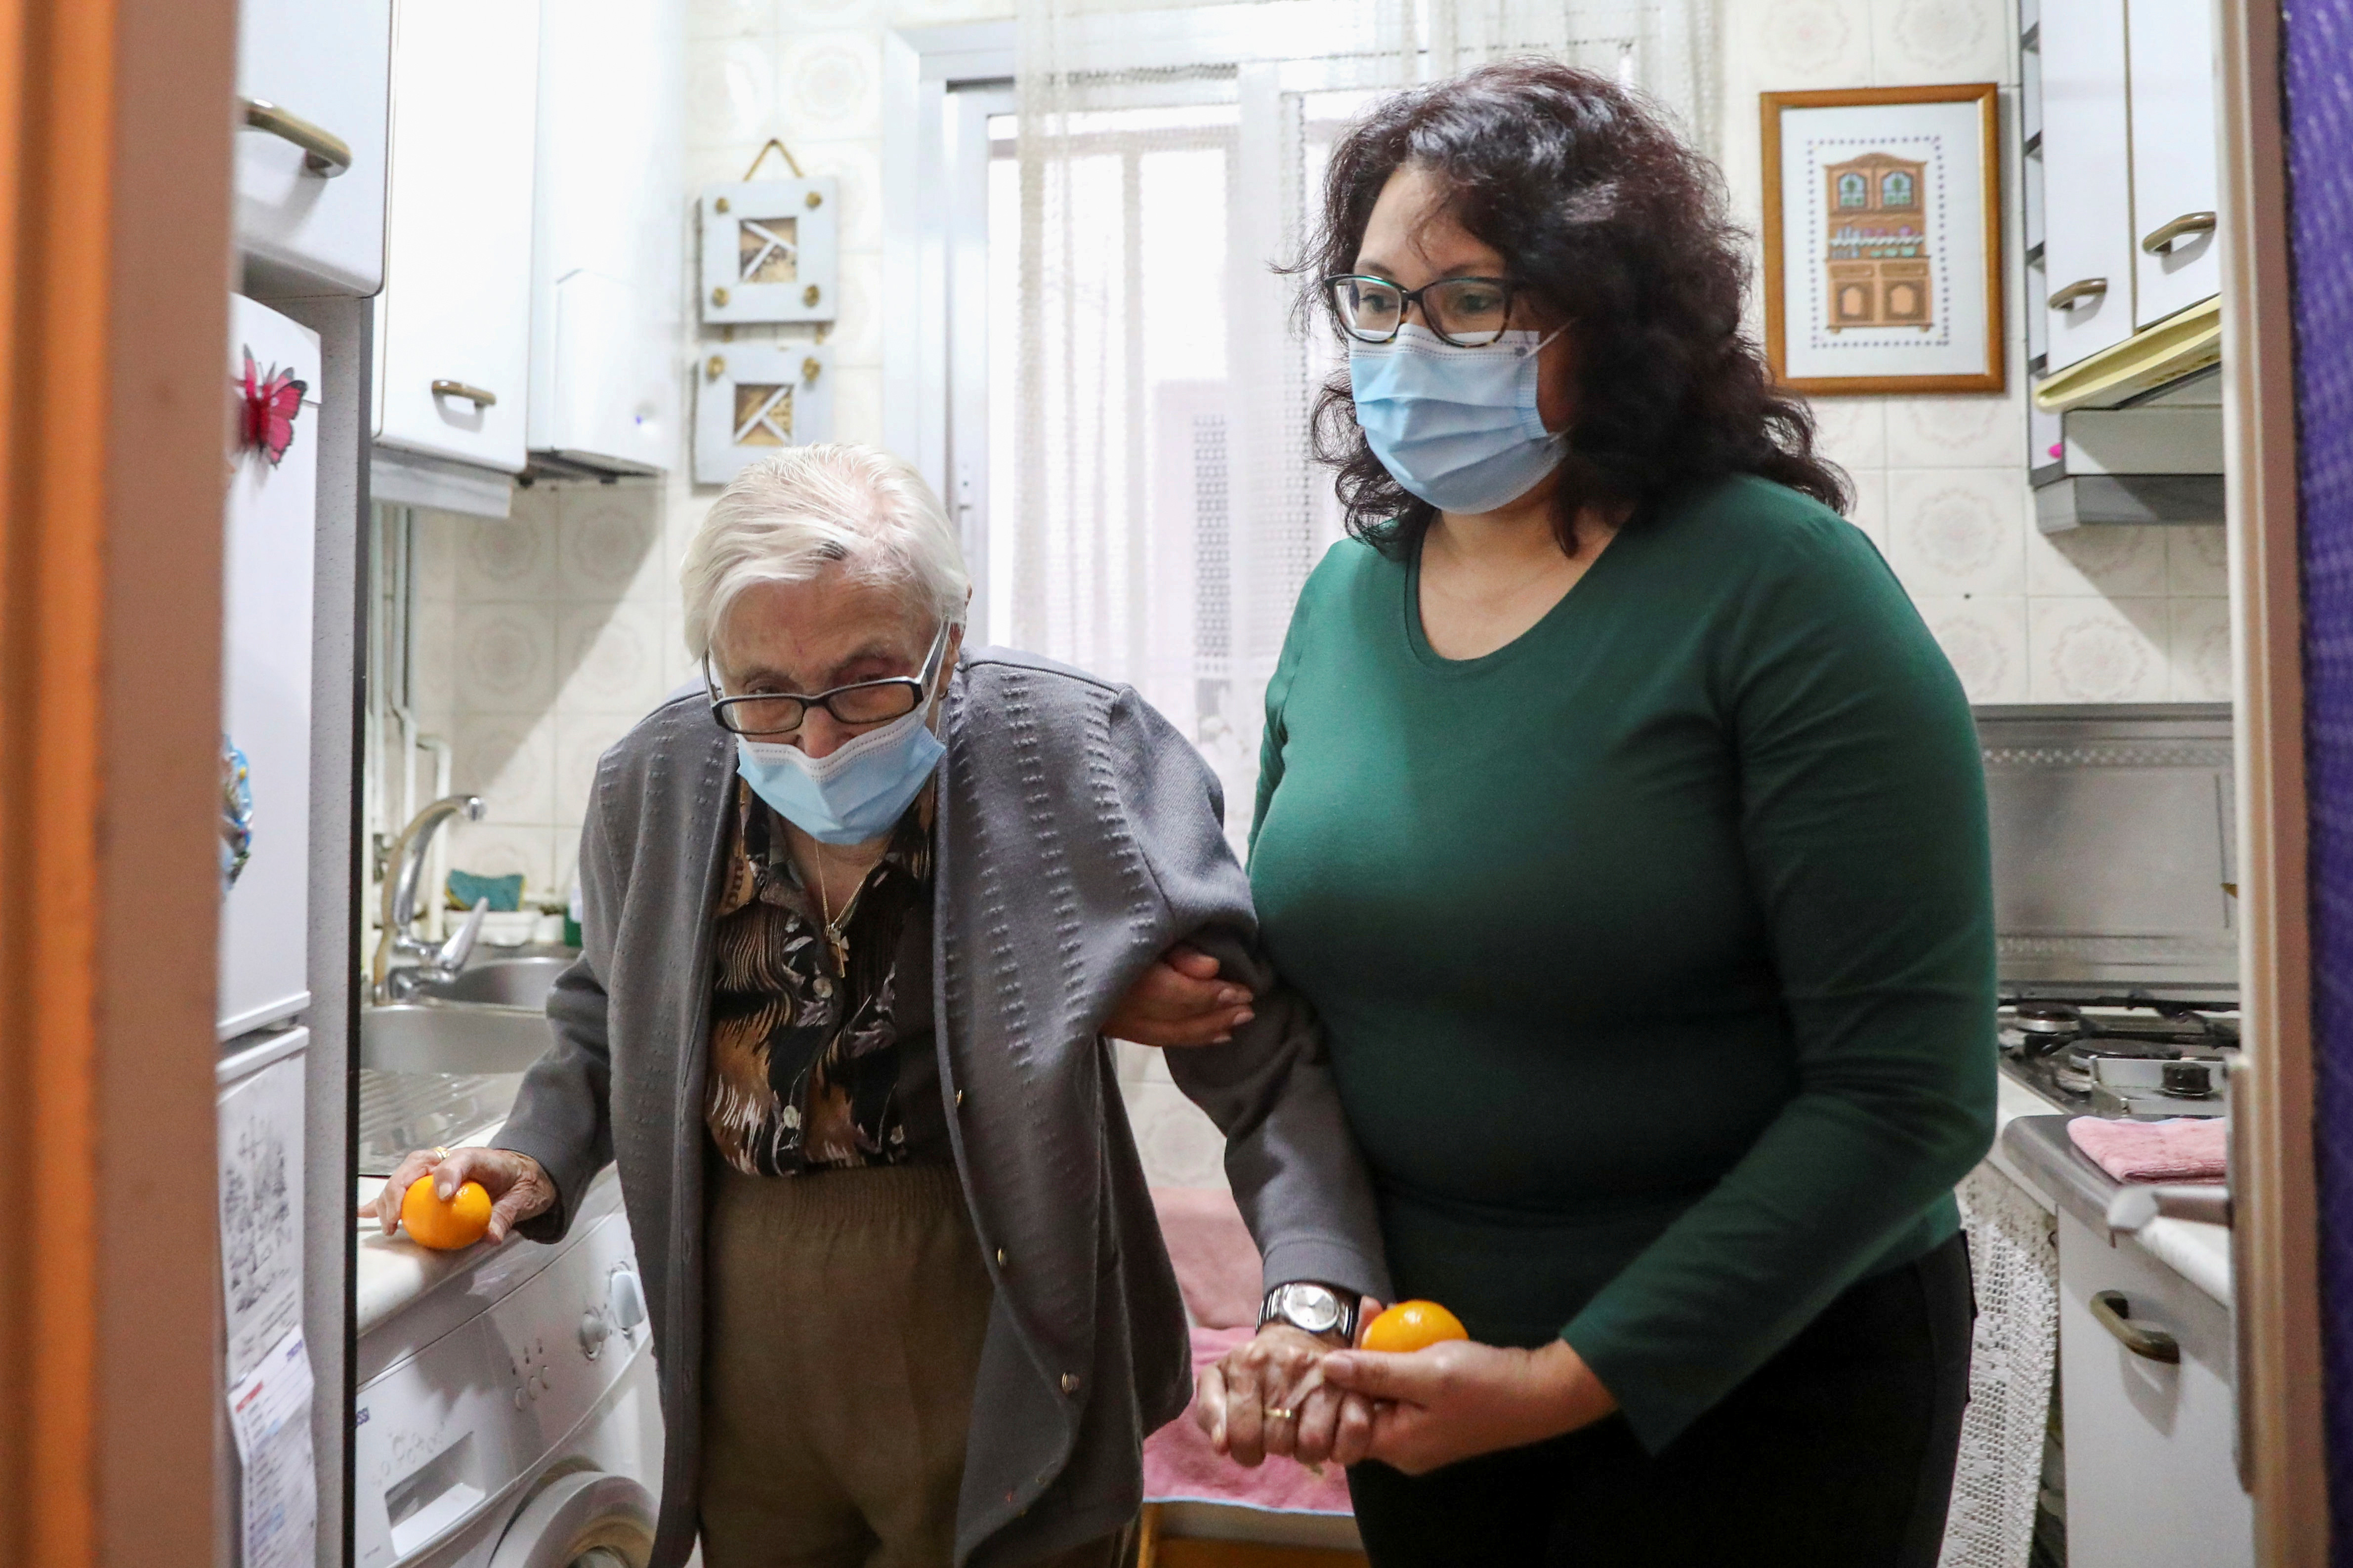 Florentina Martin, a 99 year-old woman who survived coronavirus disease (COVID-19), is helped by her caregiver Olga Arauz in her home in Pinto, near Madrid, Spain, October 20, 2020. Picture taken October 20, 2020. REUTERS/Sergio Perez - RC20NJ9N3H13